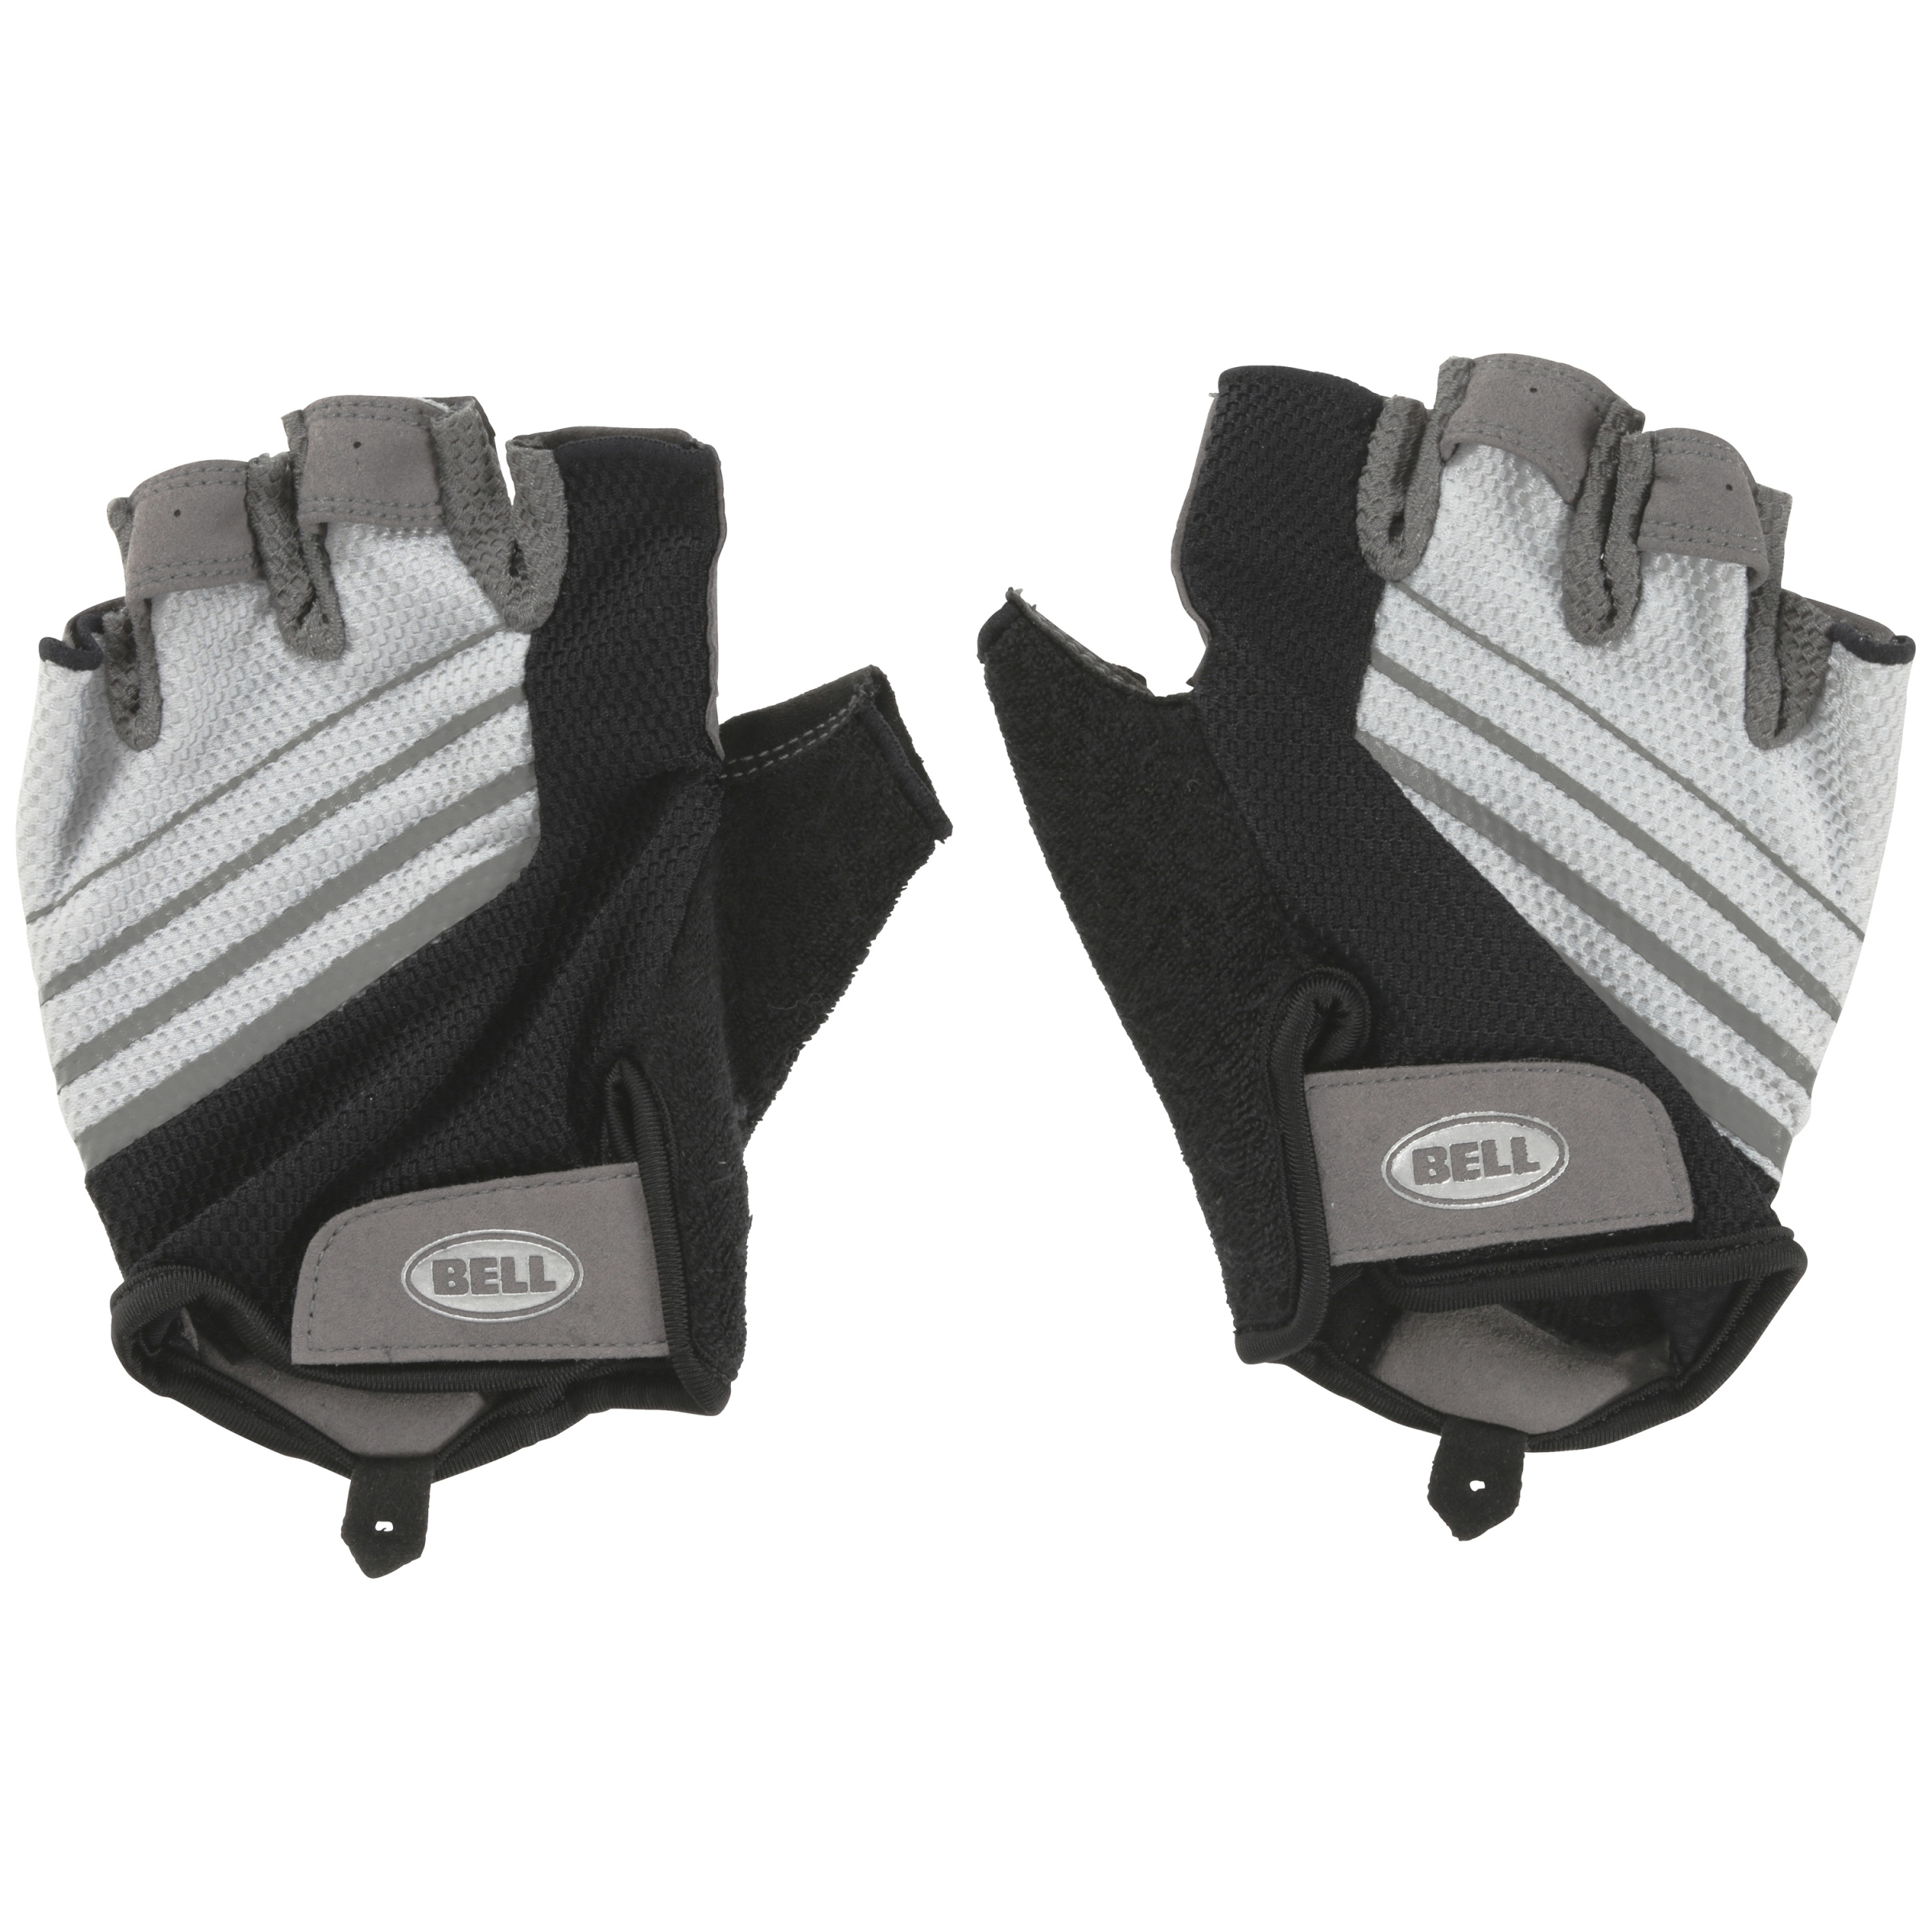 Bell® Ramble™ 500 Warm Weather Riding Performance Cycling Gloves 2 ct Pack